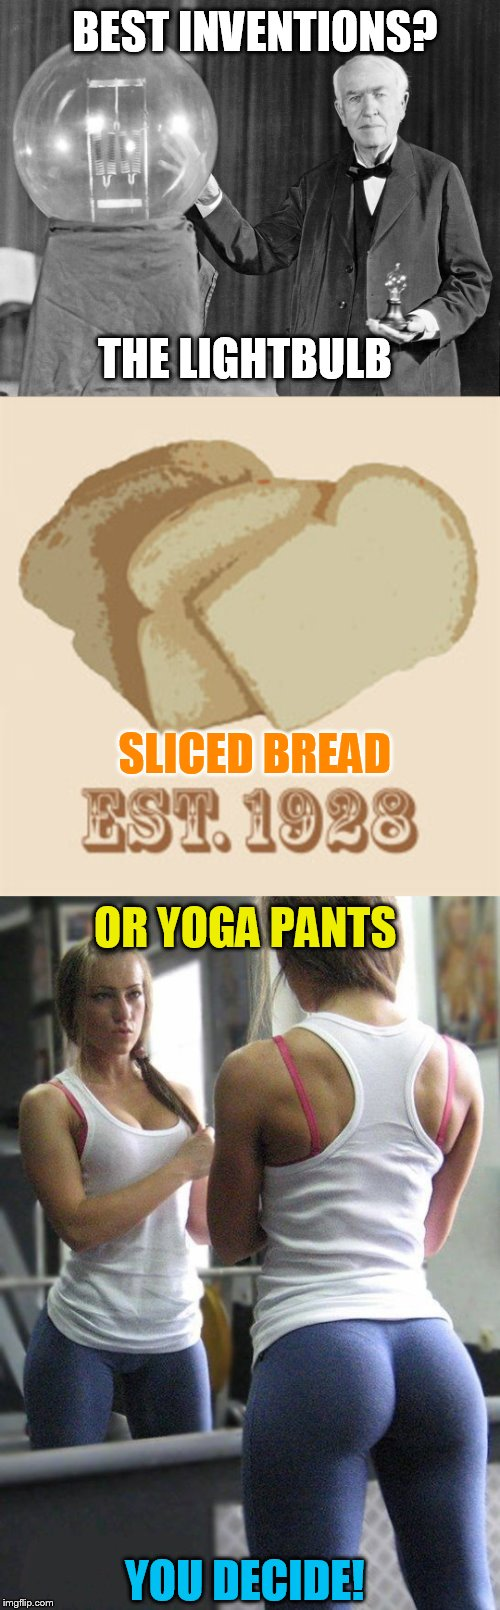 The Best Invention Is? Yoga Pant's Week A Tetsuoswrath/Lynch1979 Event March 20th--27th | THE LIGHTBULB SLICED BREAD OR YOGA PANTS BEST INVENTIONS? YOU DECIDE! | image tagged in yoga pants week,yoga pants,lightbulb,sliced bread,meme,inventions | made w/ Imgflip meme maker